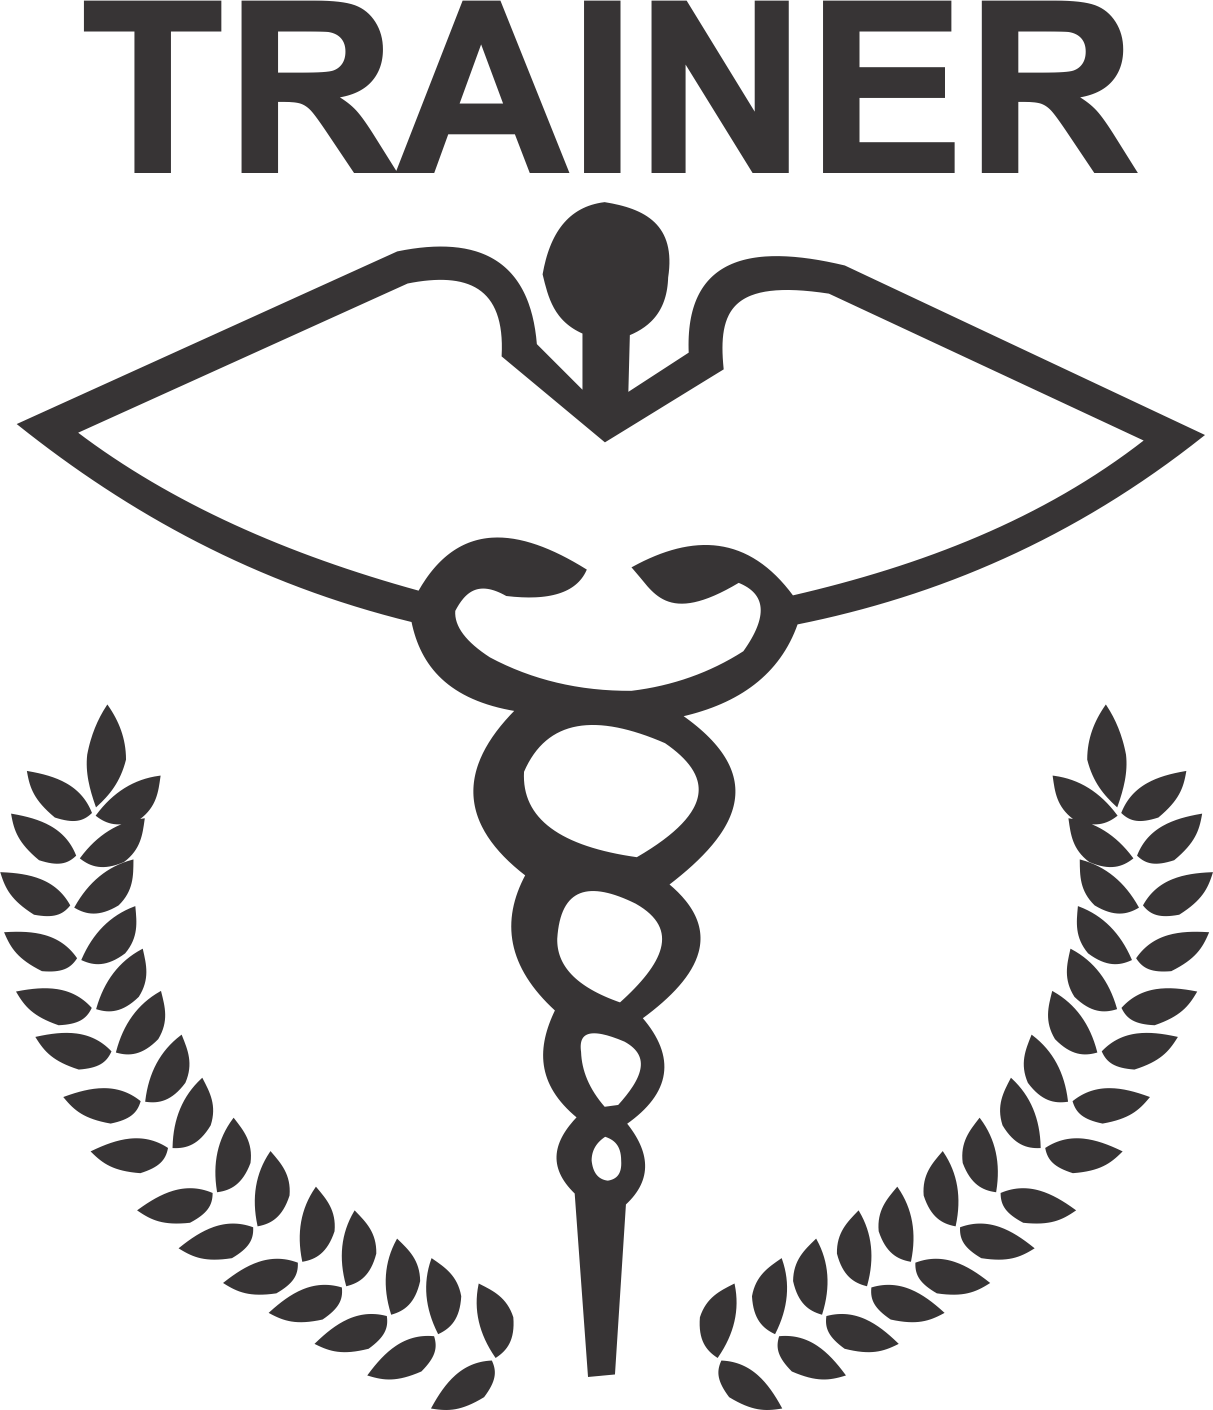 Trainer Official